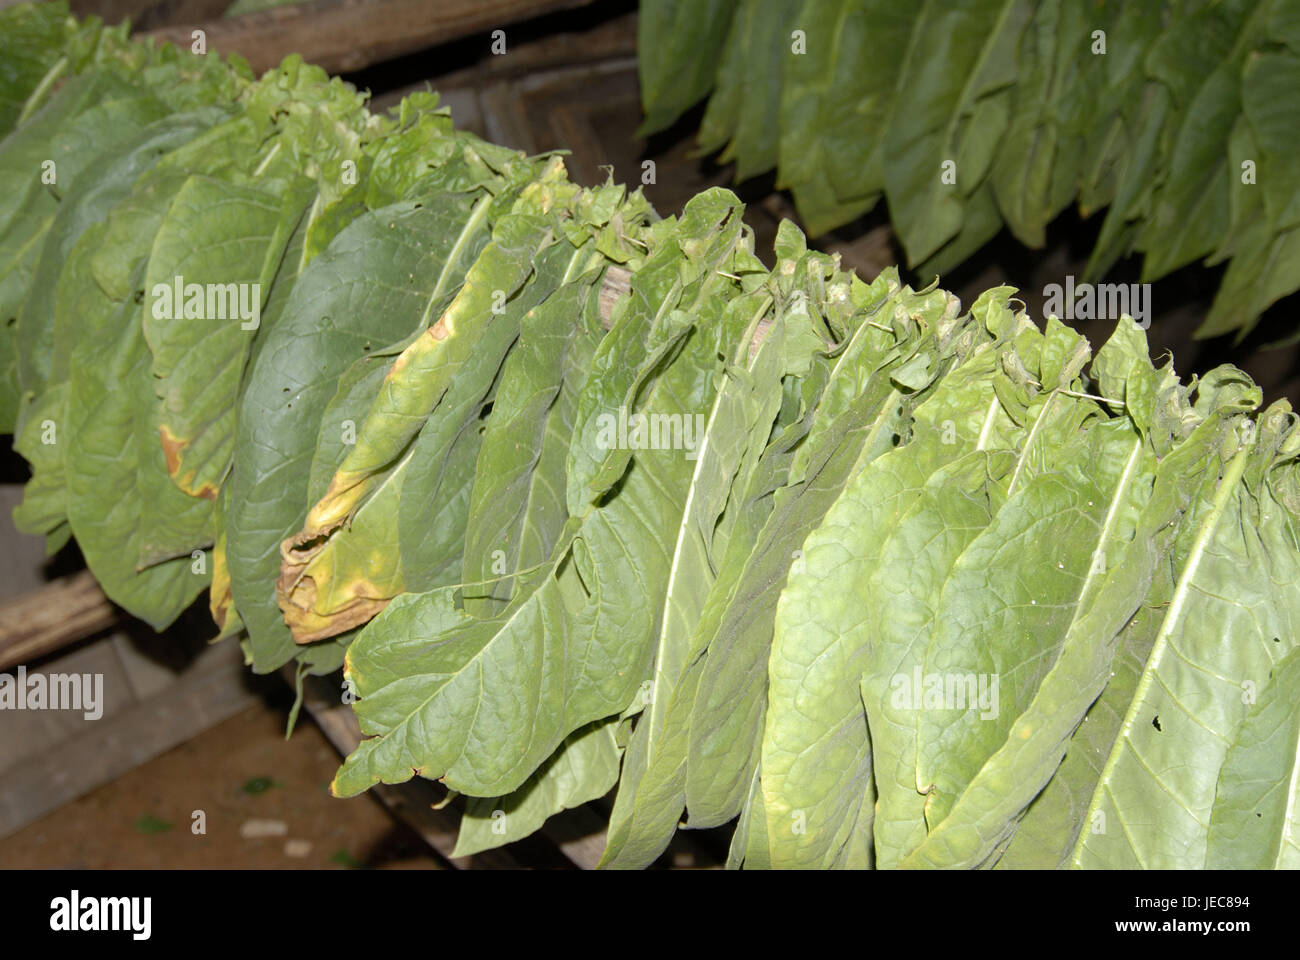 Cuba, Vinales, tobacco leaves, drying, the Caribbean, island, device, leaves, tobacco, hang up, hang, dry, air-dry, - Stock Image